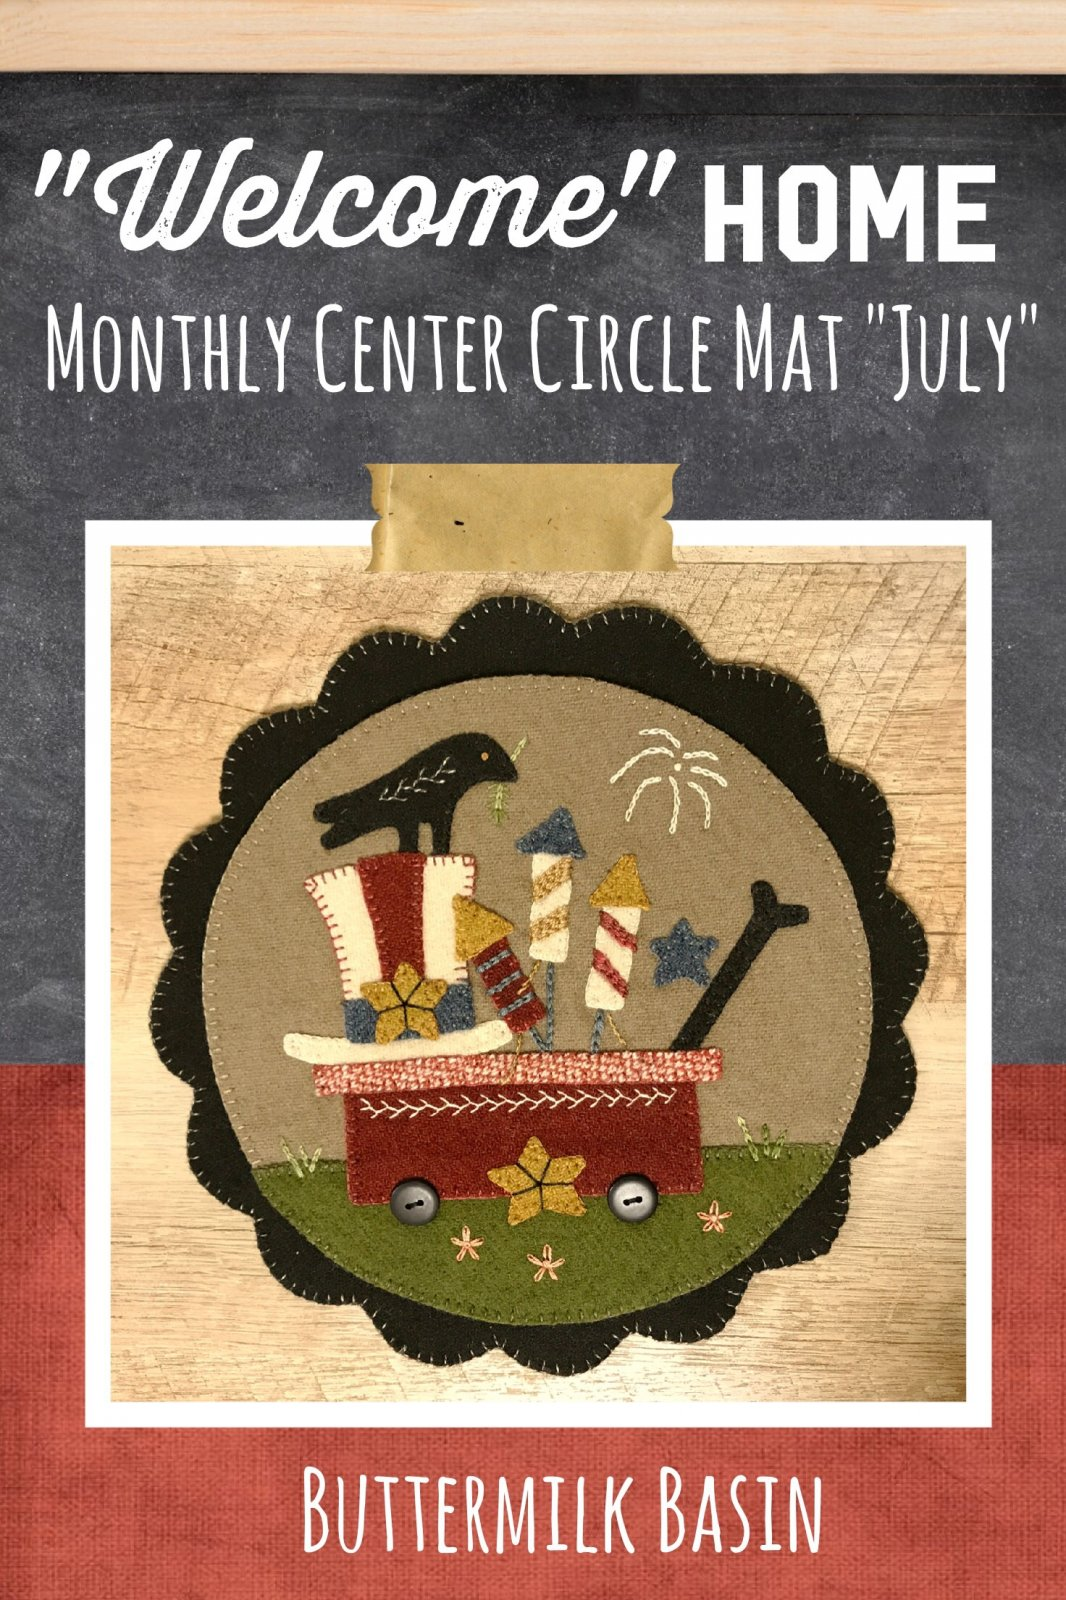 Welcome HOME July Center Circle Pattern